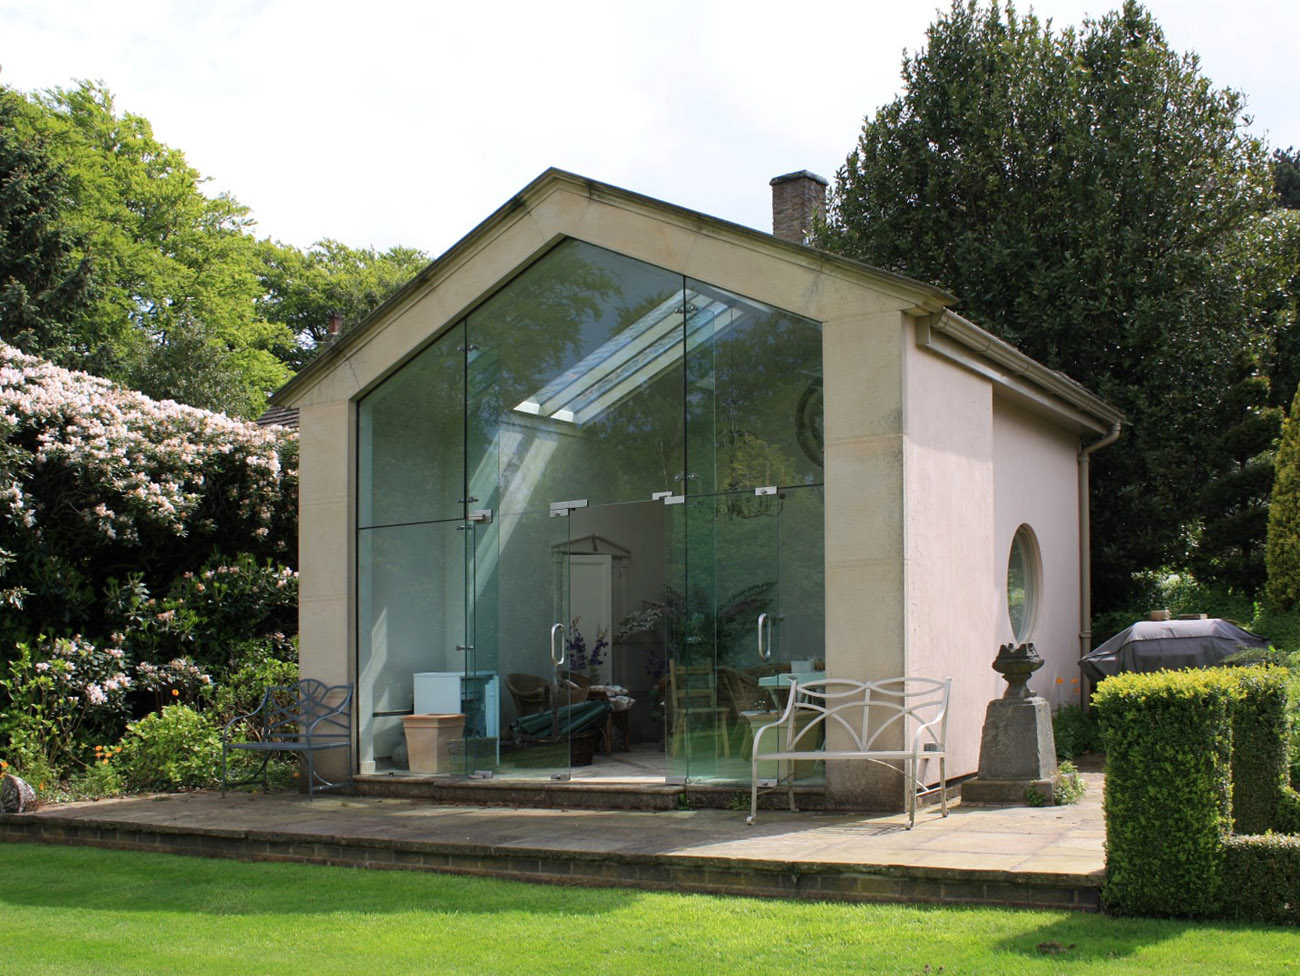 Contemporary garden room near listed building